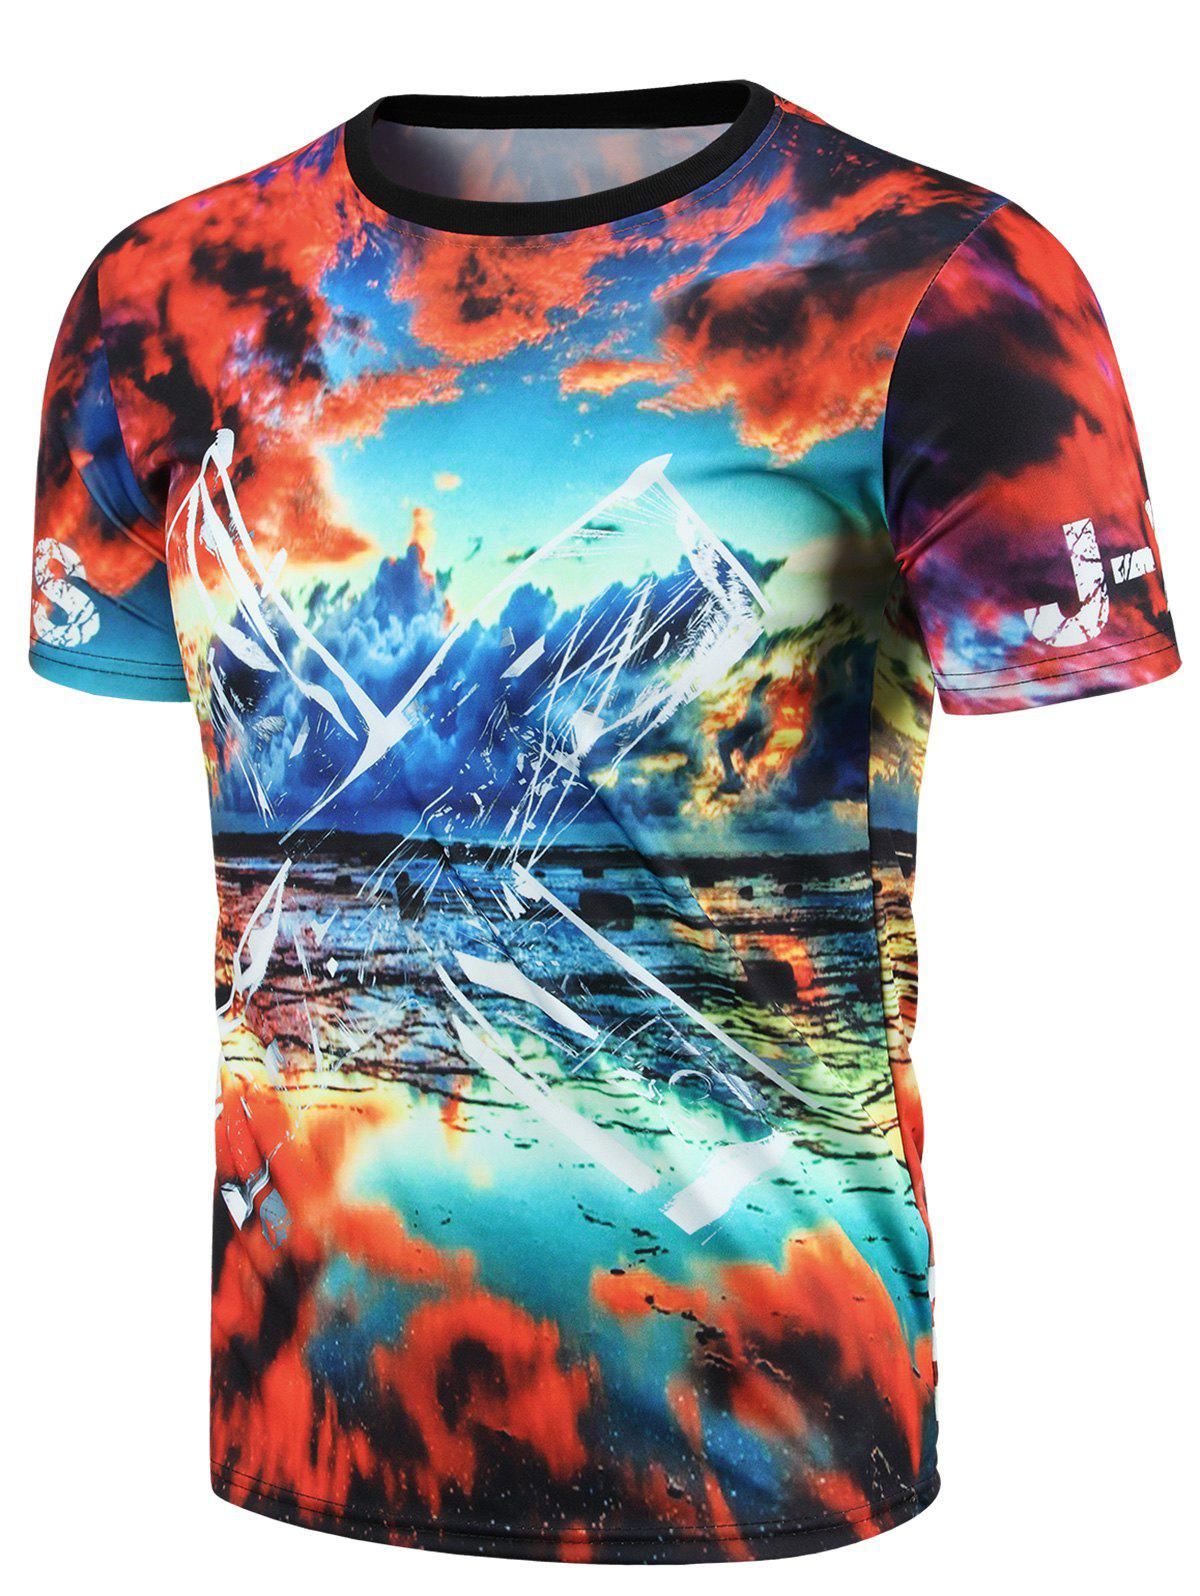 3D Colorful Sky Print Round Neck Short Sleeve Men's T-Shirt